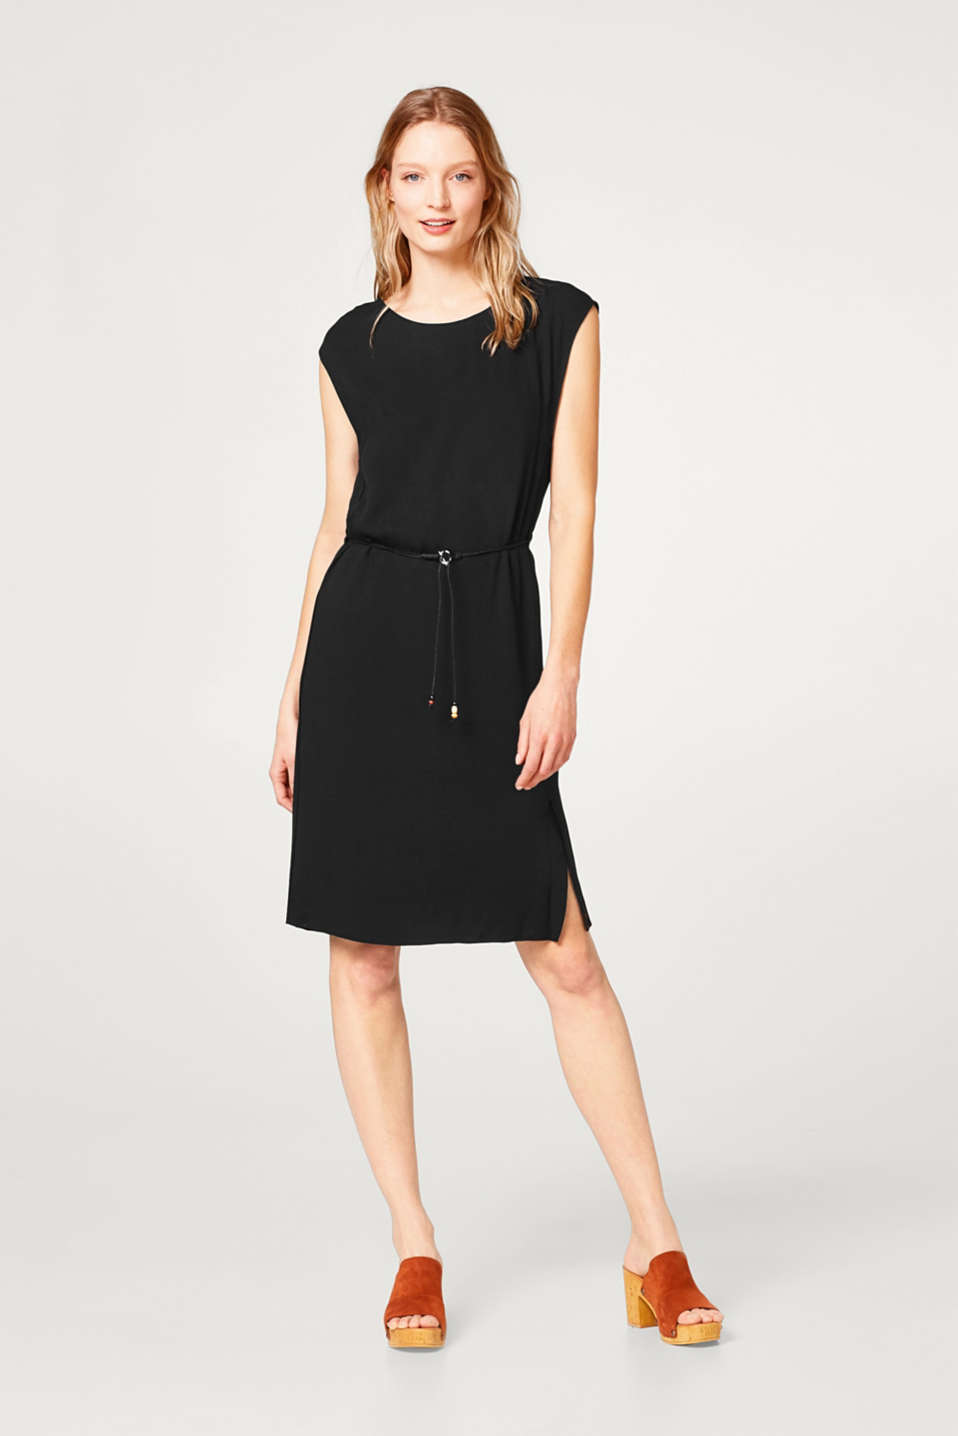 Crêpe dress with a layered effect and drawstring waist